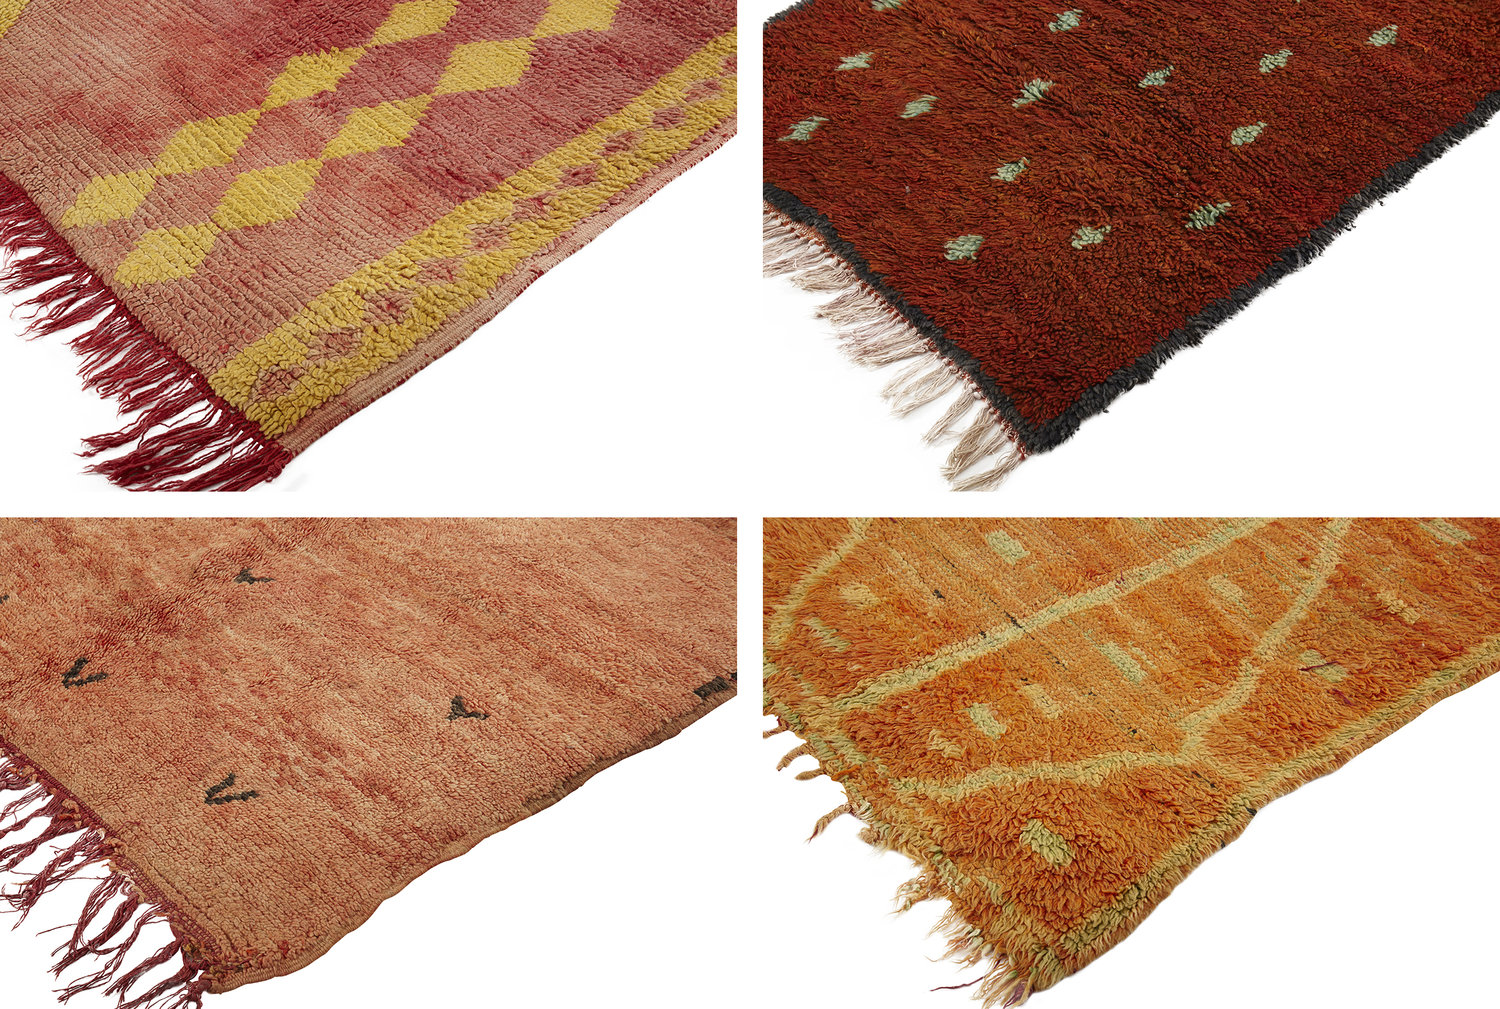 From left to right: 1) Coral Harlequin Boujad Rug 2) Boujad Runner 3) Rehamna Rug 4) Boujad Runner Rug